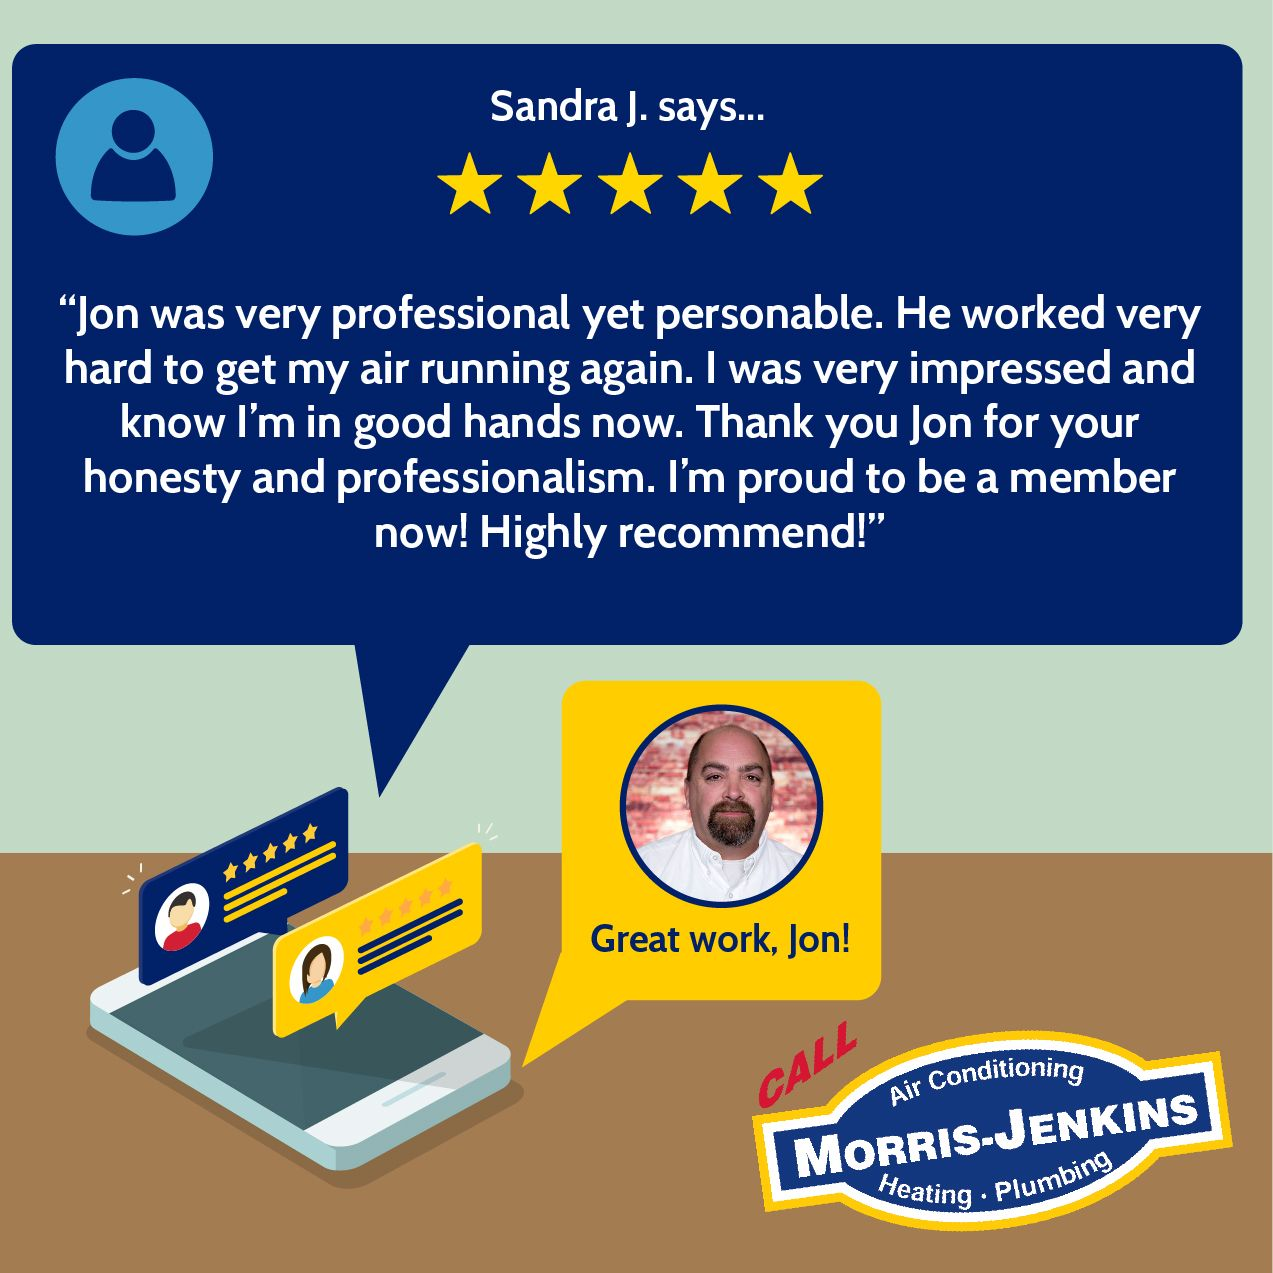 Way to go, Jon! Our core values (honesty, integrity